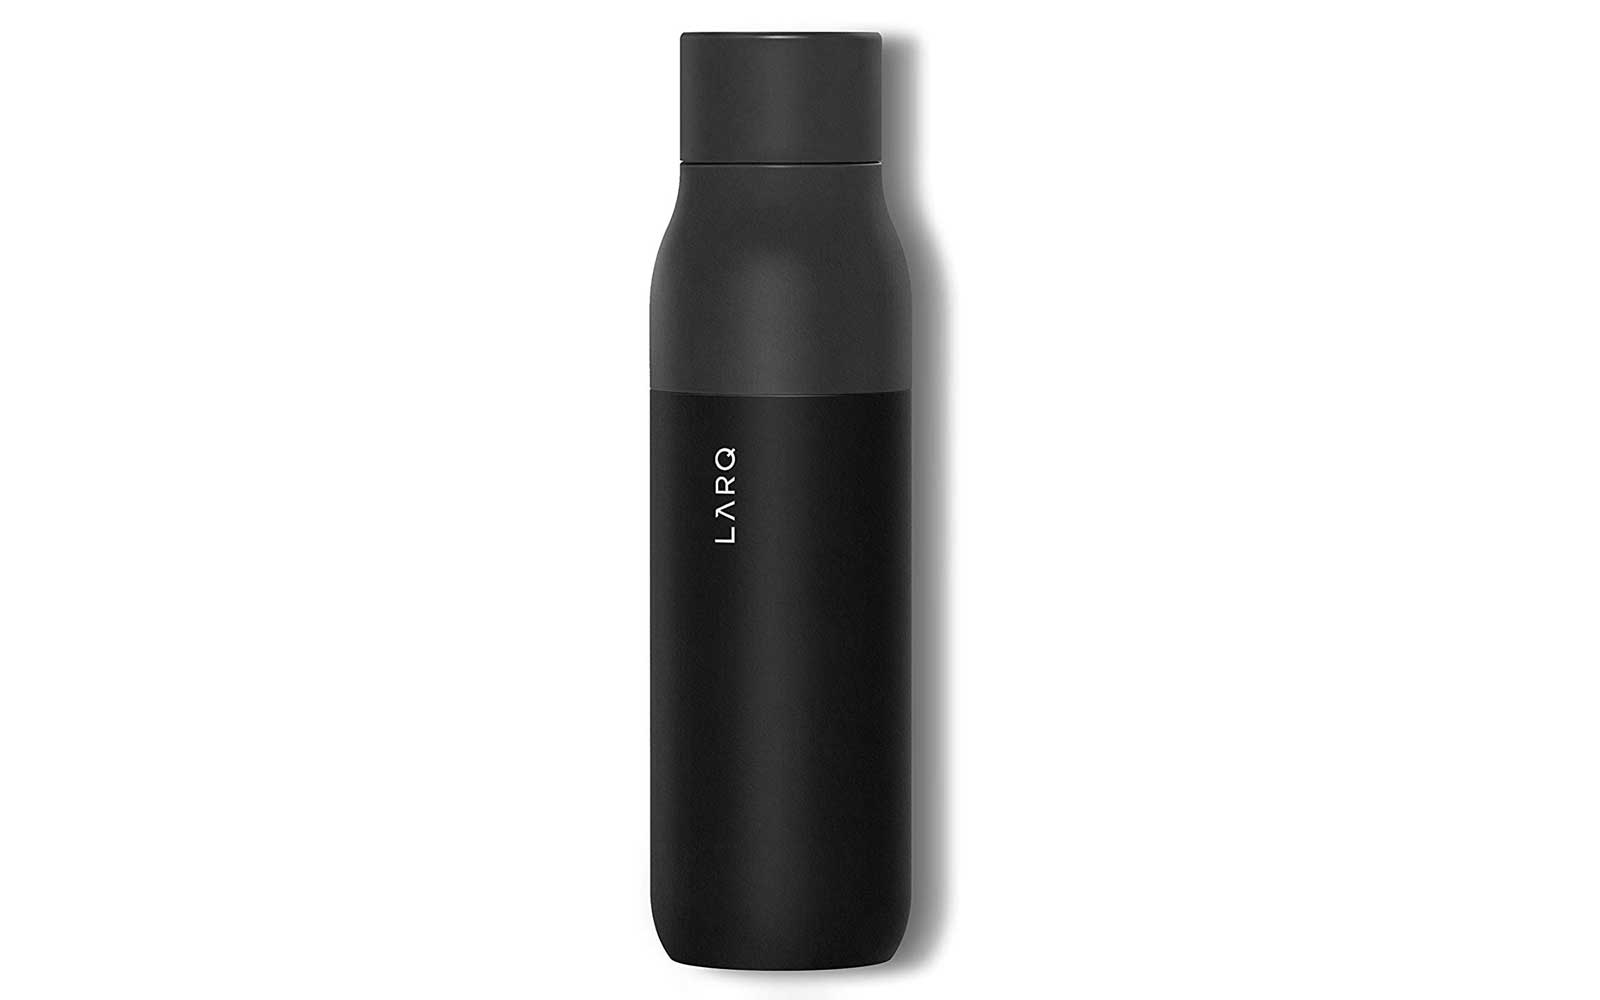 Black Reusable Water Bottle